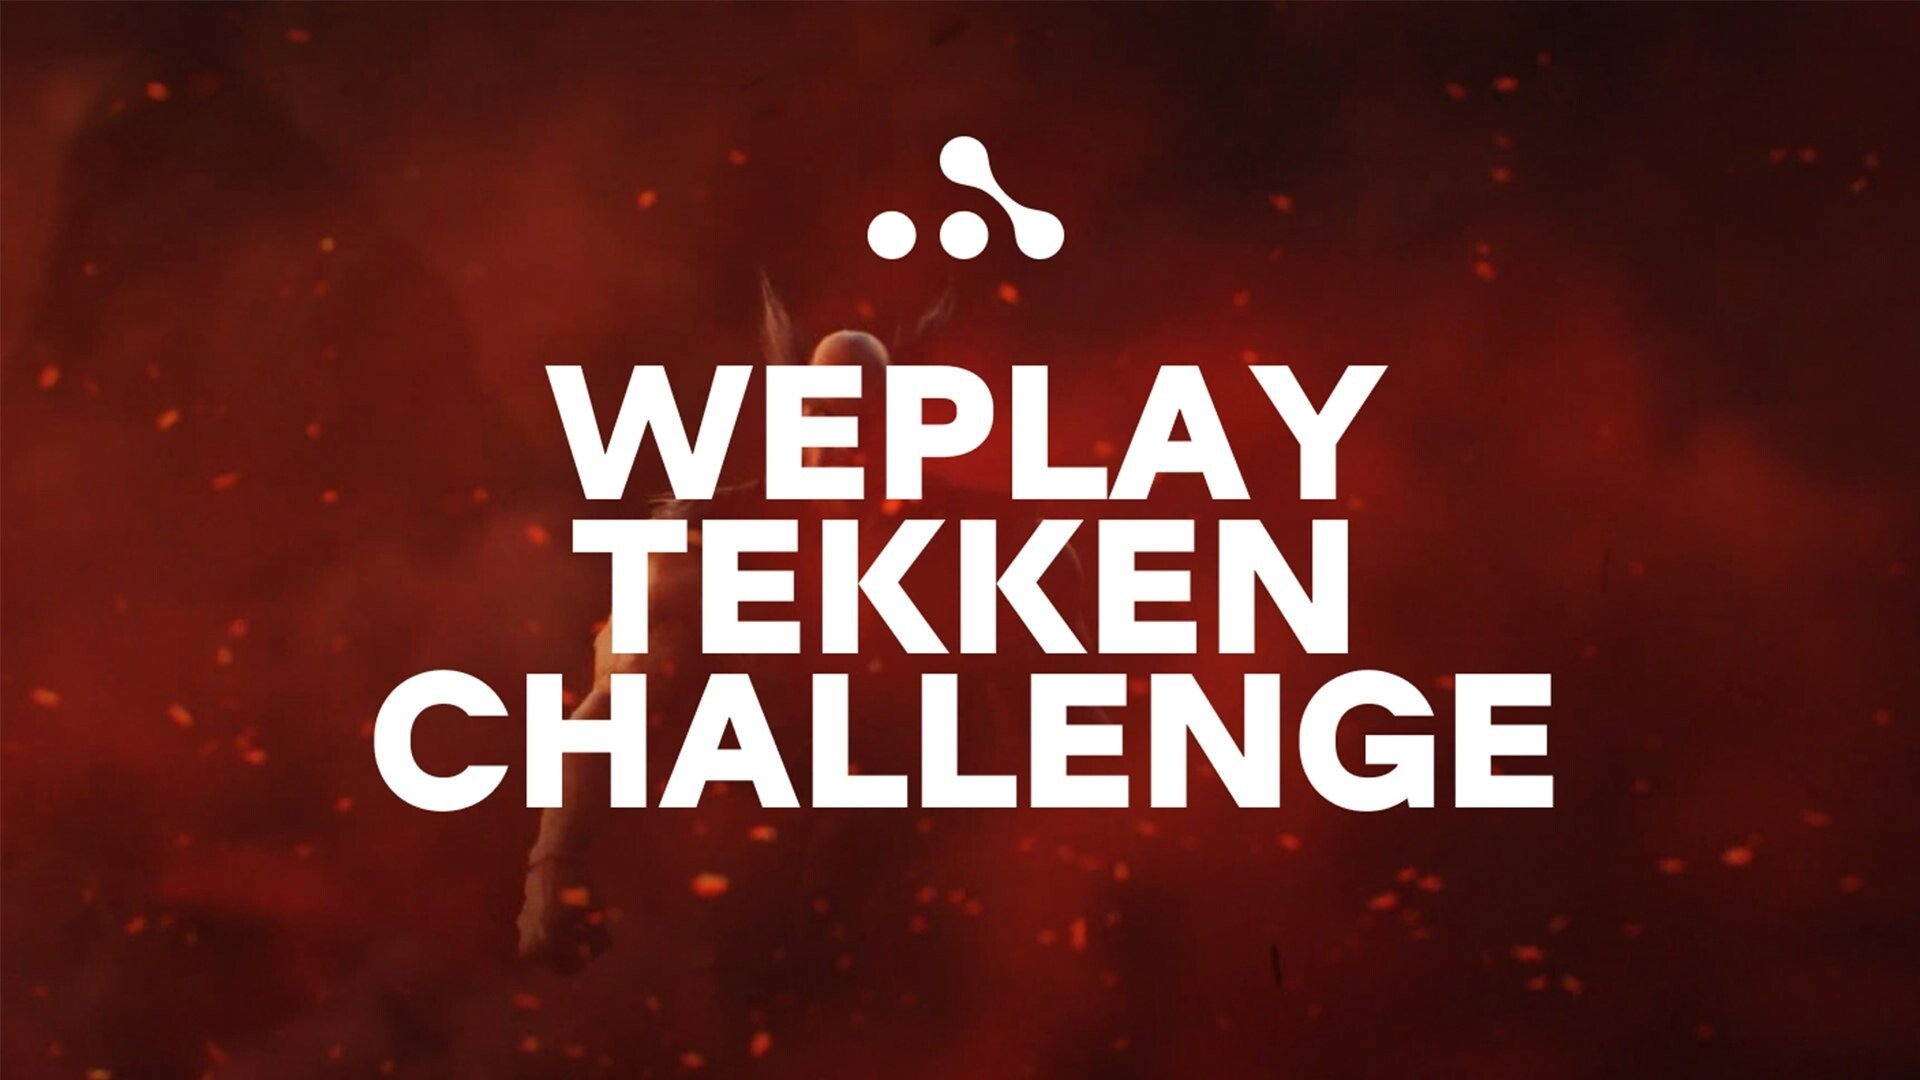 WePlay Tekken Challenge: All You Need To Know